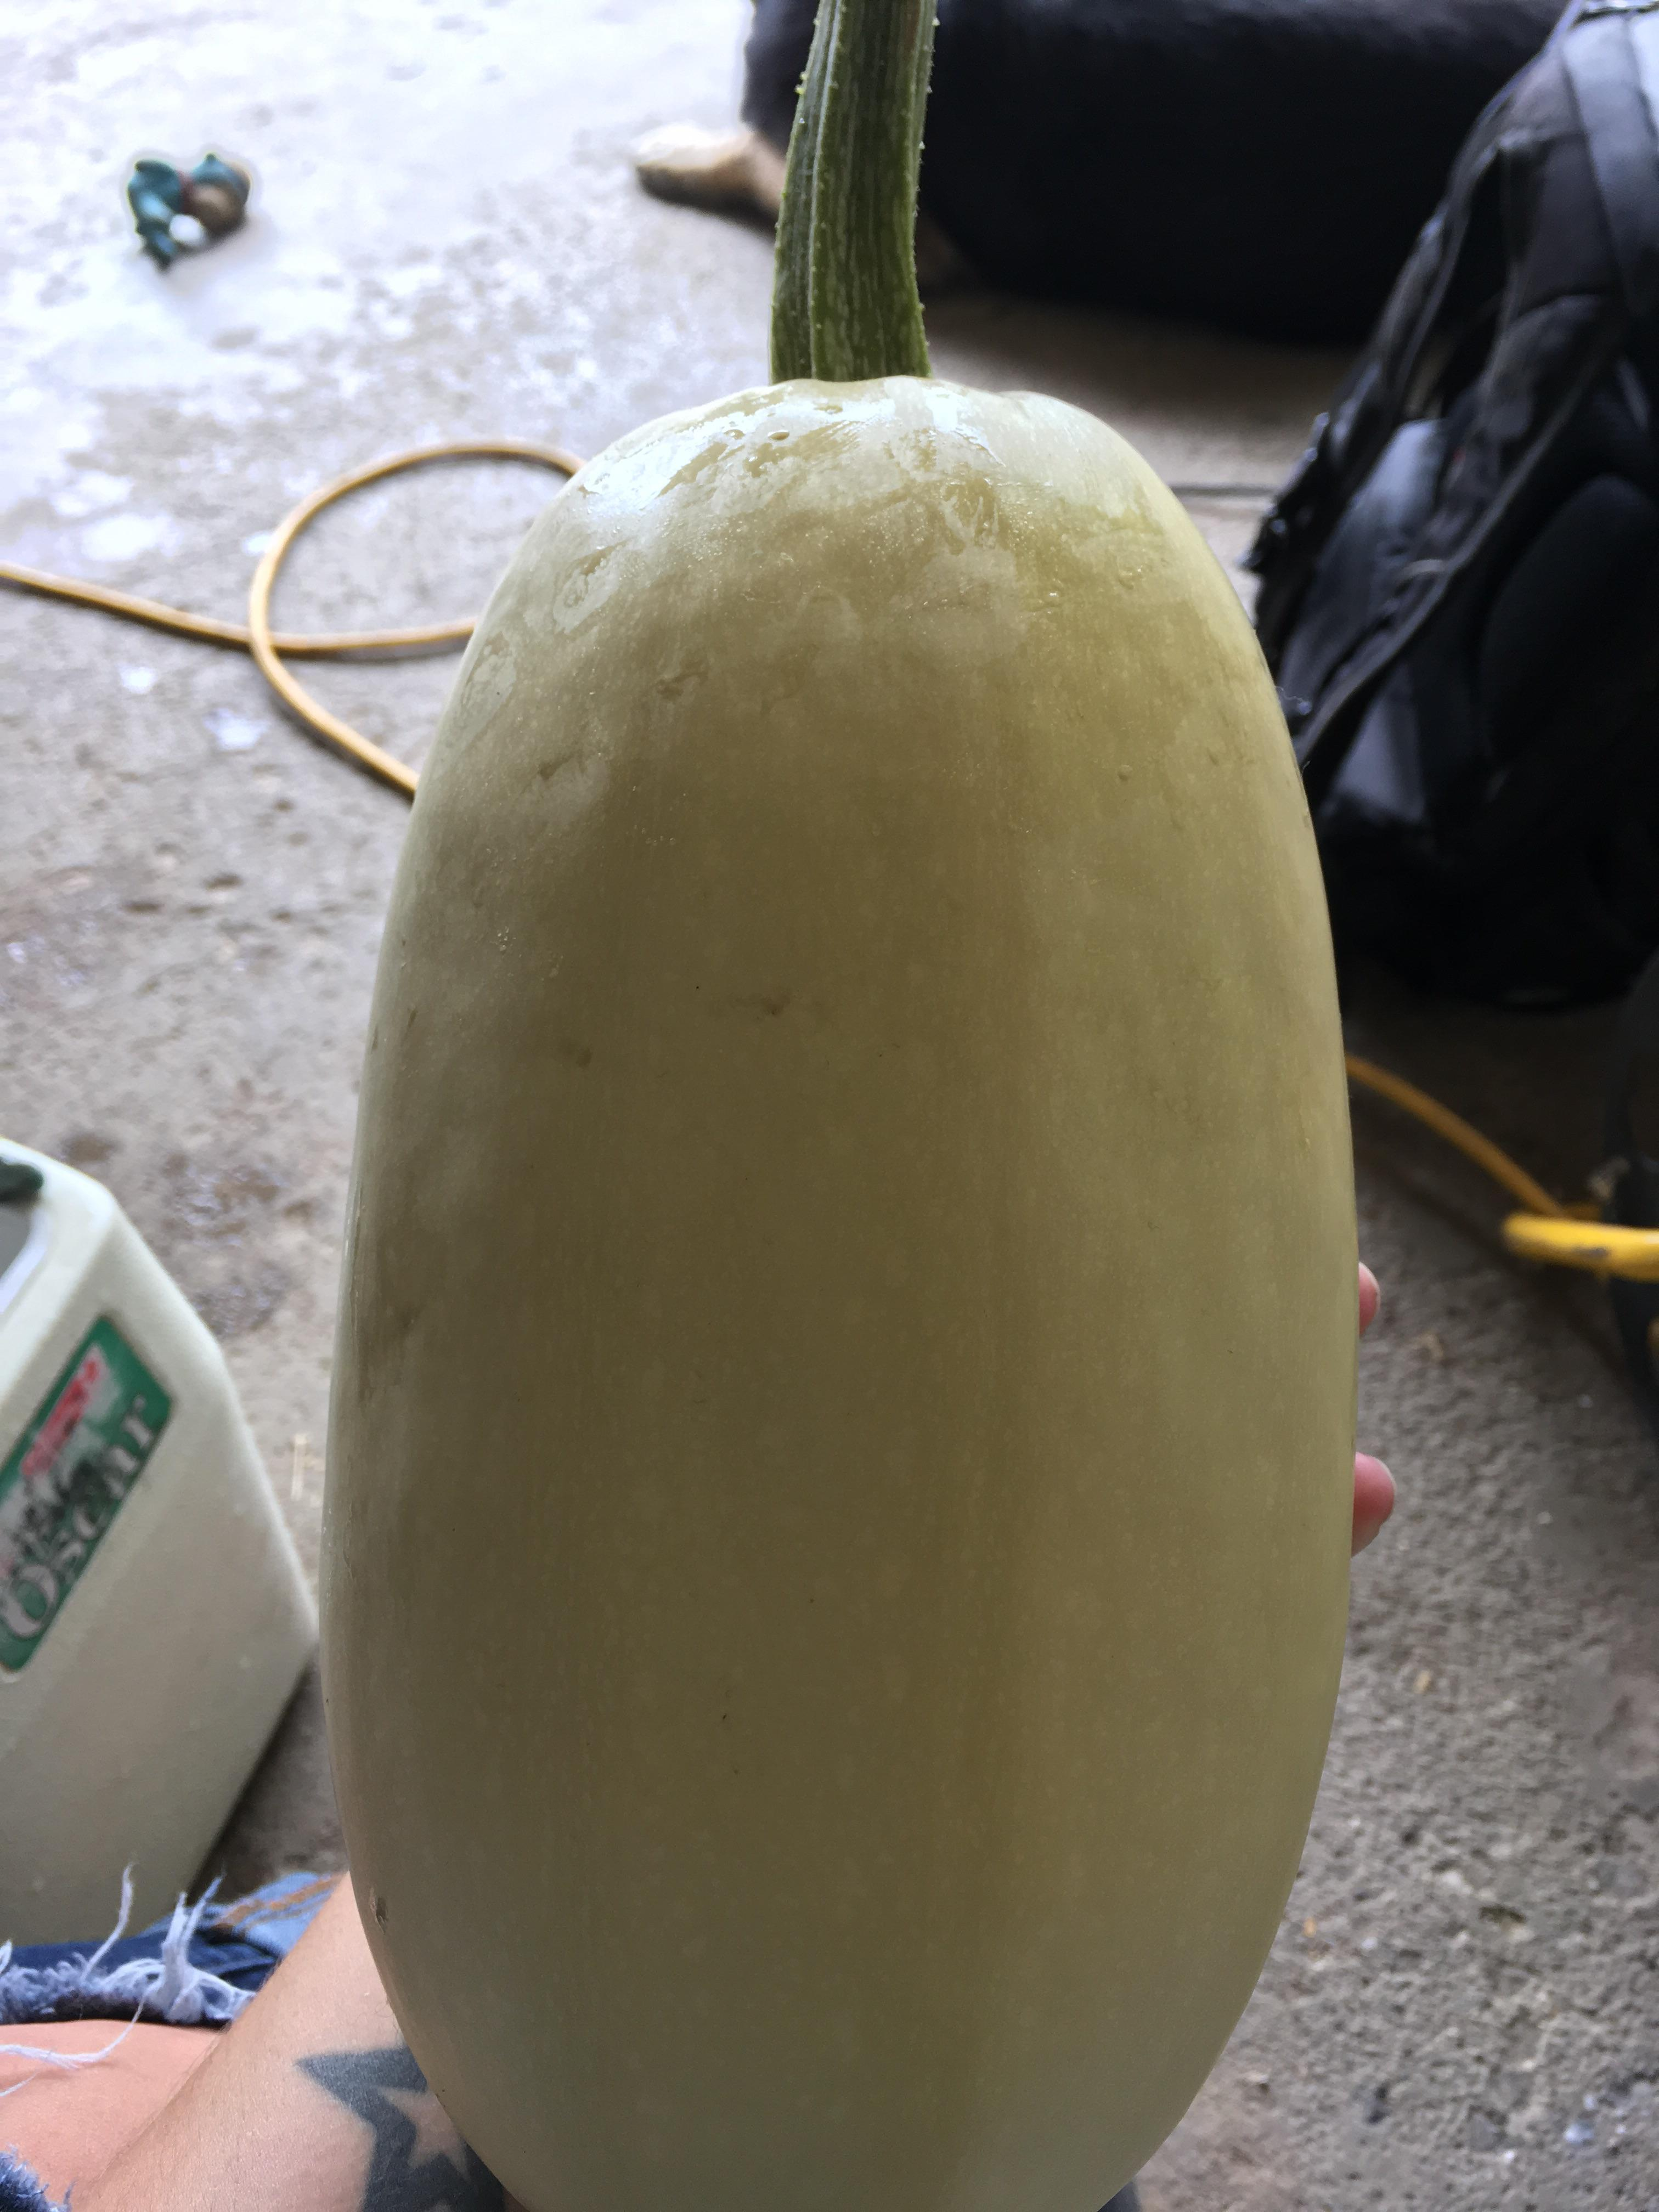 Modern Spaghetti Took Over Time Having A Our Pick Spaghetti When To Pick Spaghetti Squash From Vine When To Pick Summer Spaghetti Squash Time Having A Our Pick houzz-02 When To Pick Spaghetti Squash